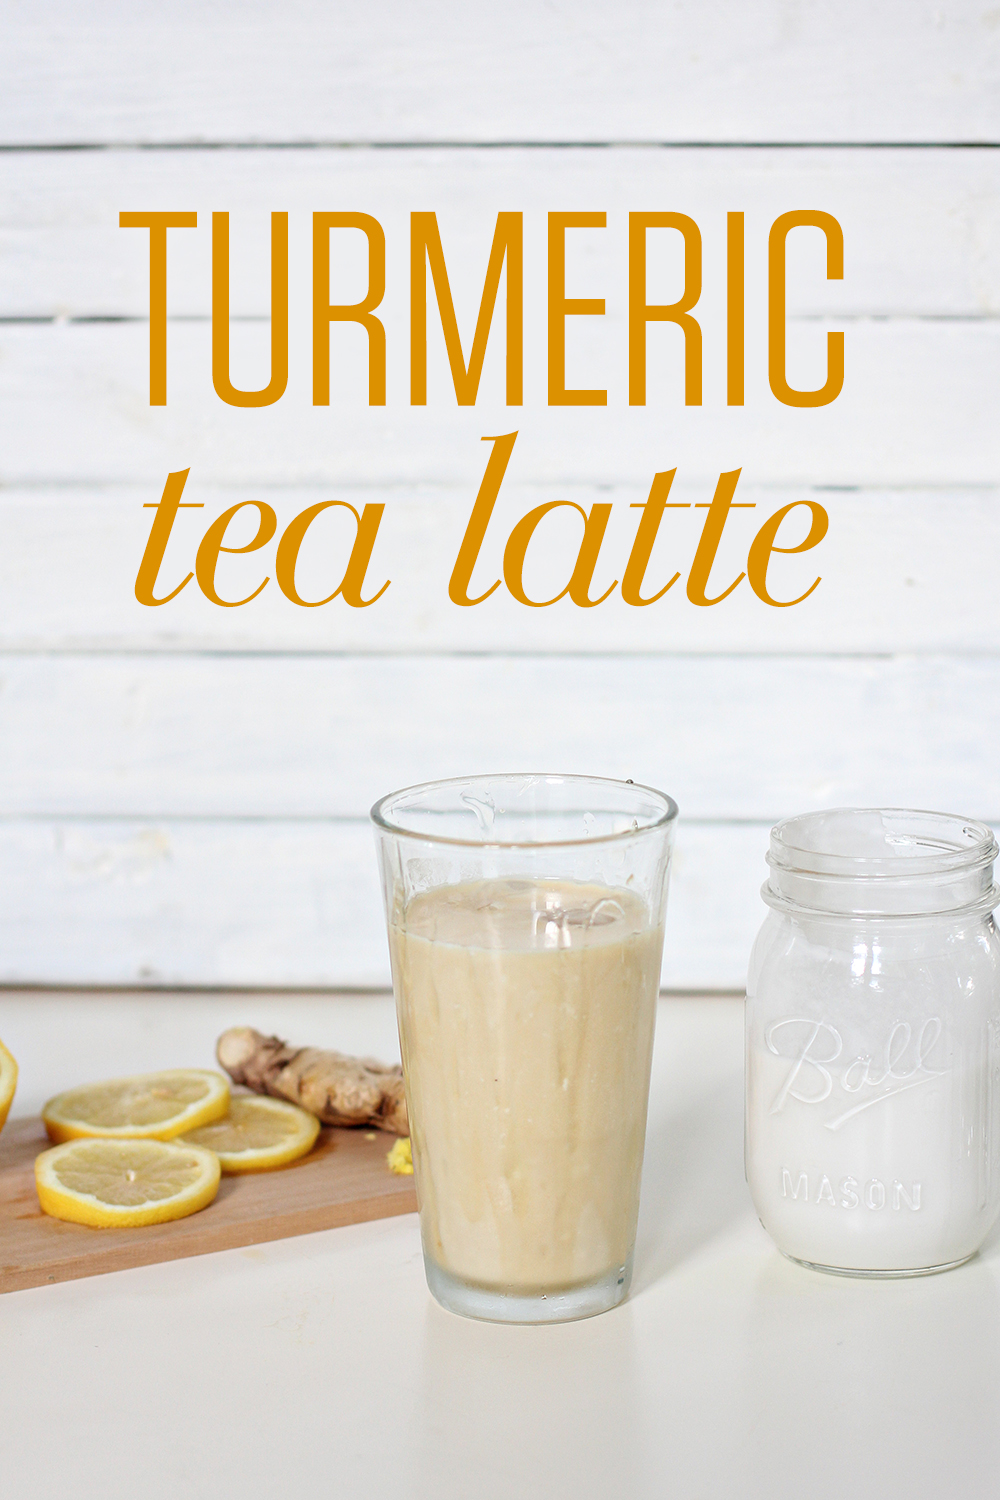 Iced Turmeric Tea Latte